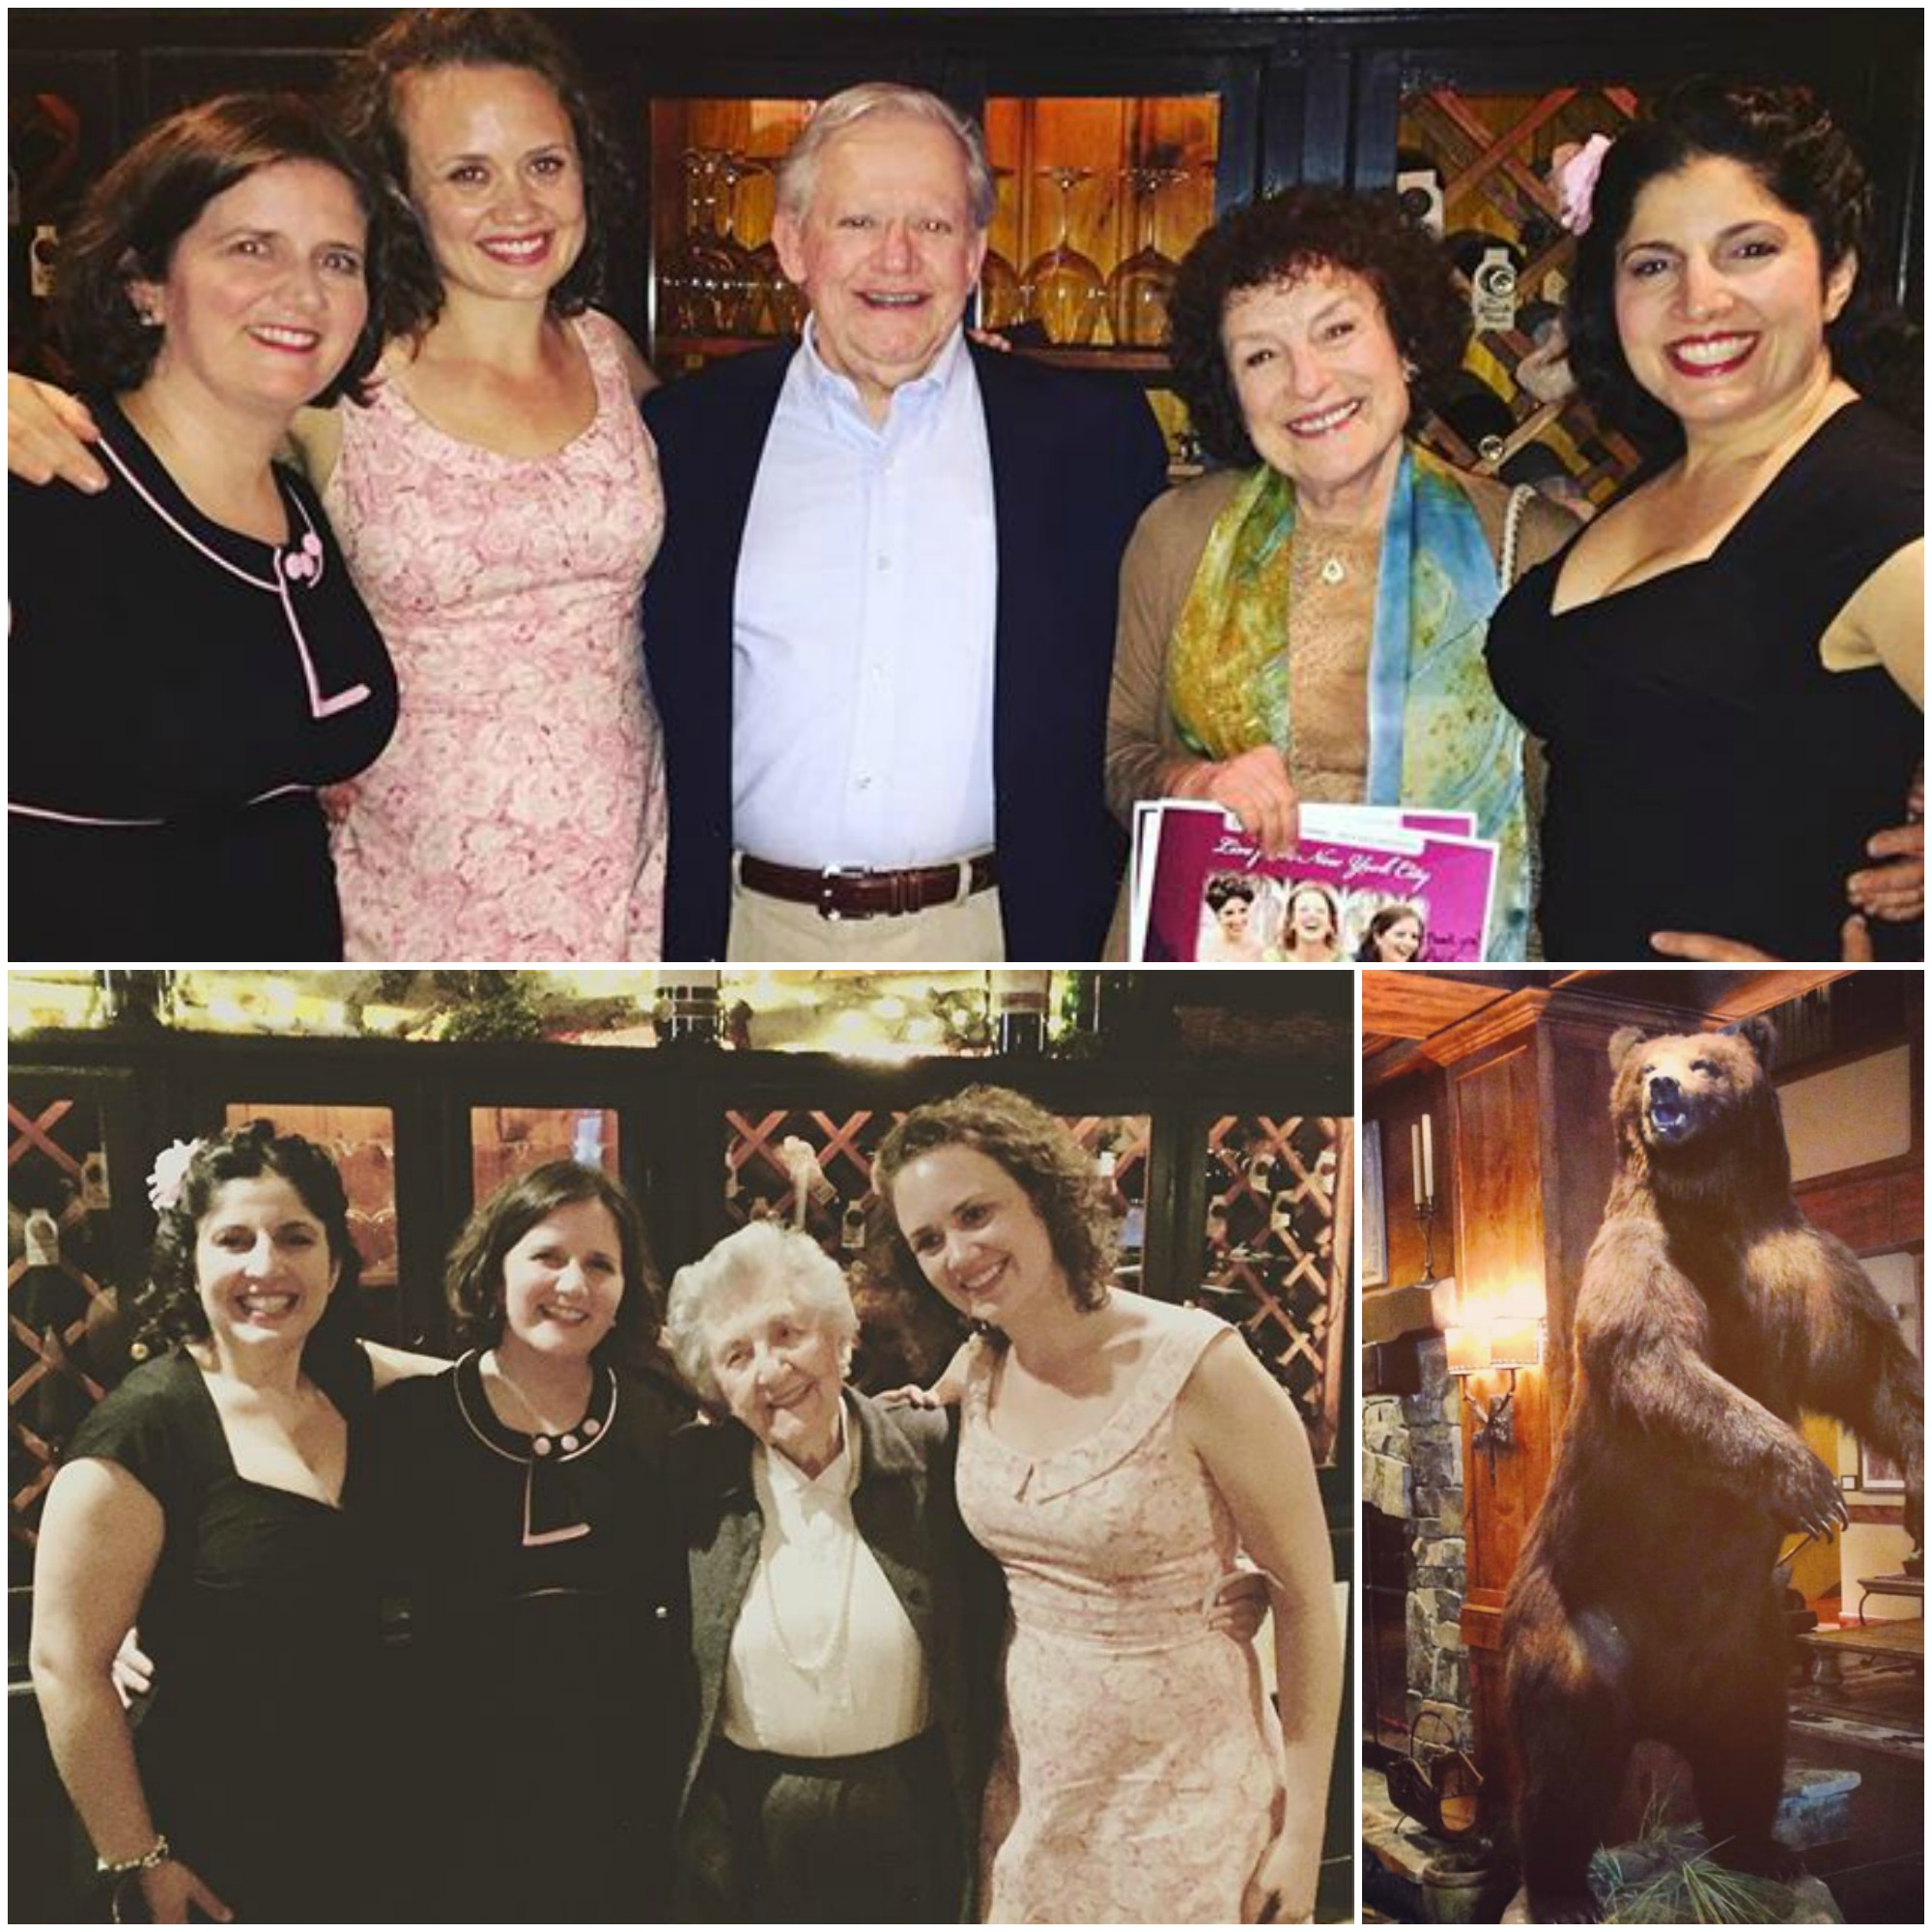 Top: DUCHESS with John Simpson & Miriam Singer, who brought us out to Montana. Bottom left: DUCHESS with Ann Clark Terry, of the Clark Sisters, a.k.a. the Sentimentalists. Bottom right: Our ursine friend in the hotel lobby bidding us adieu.